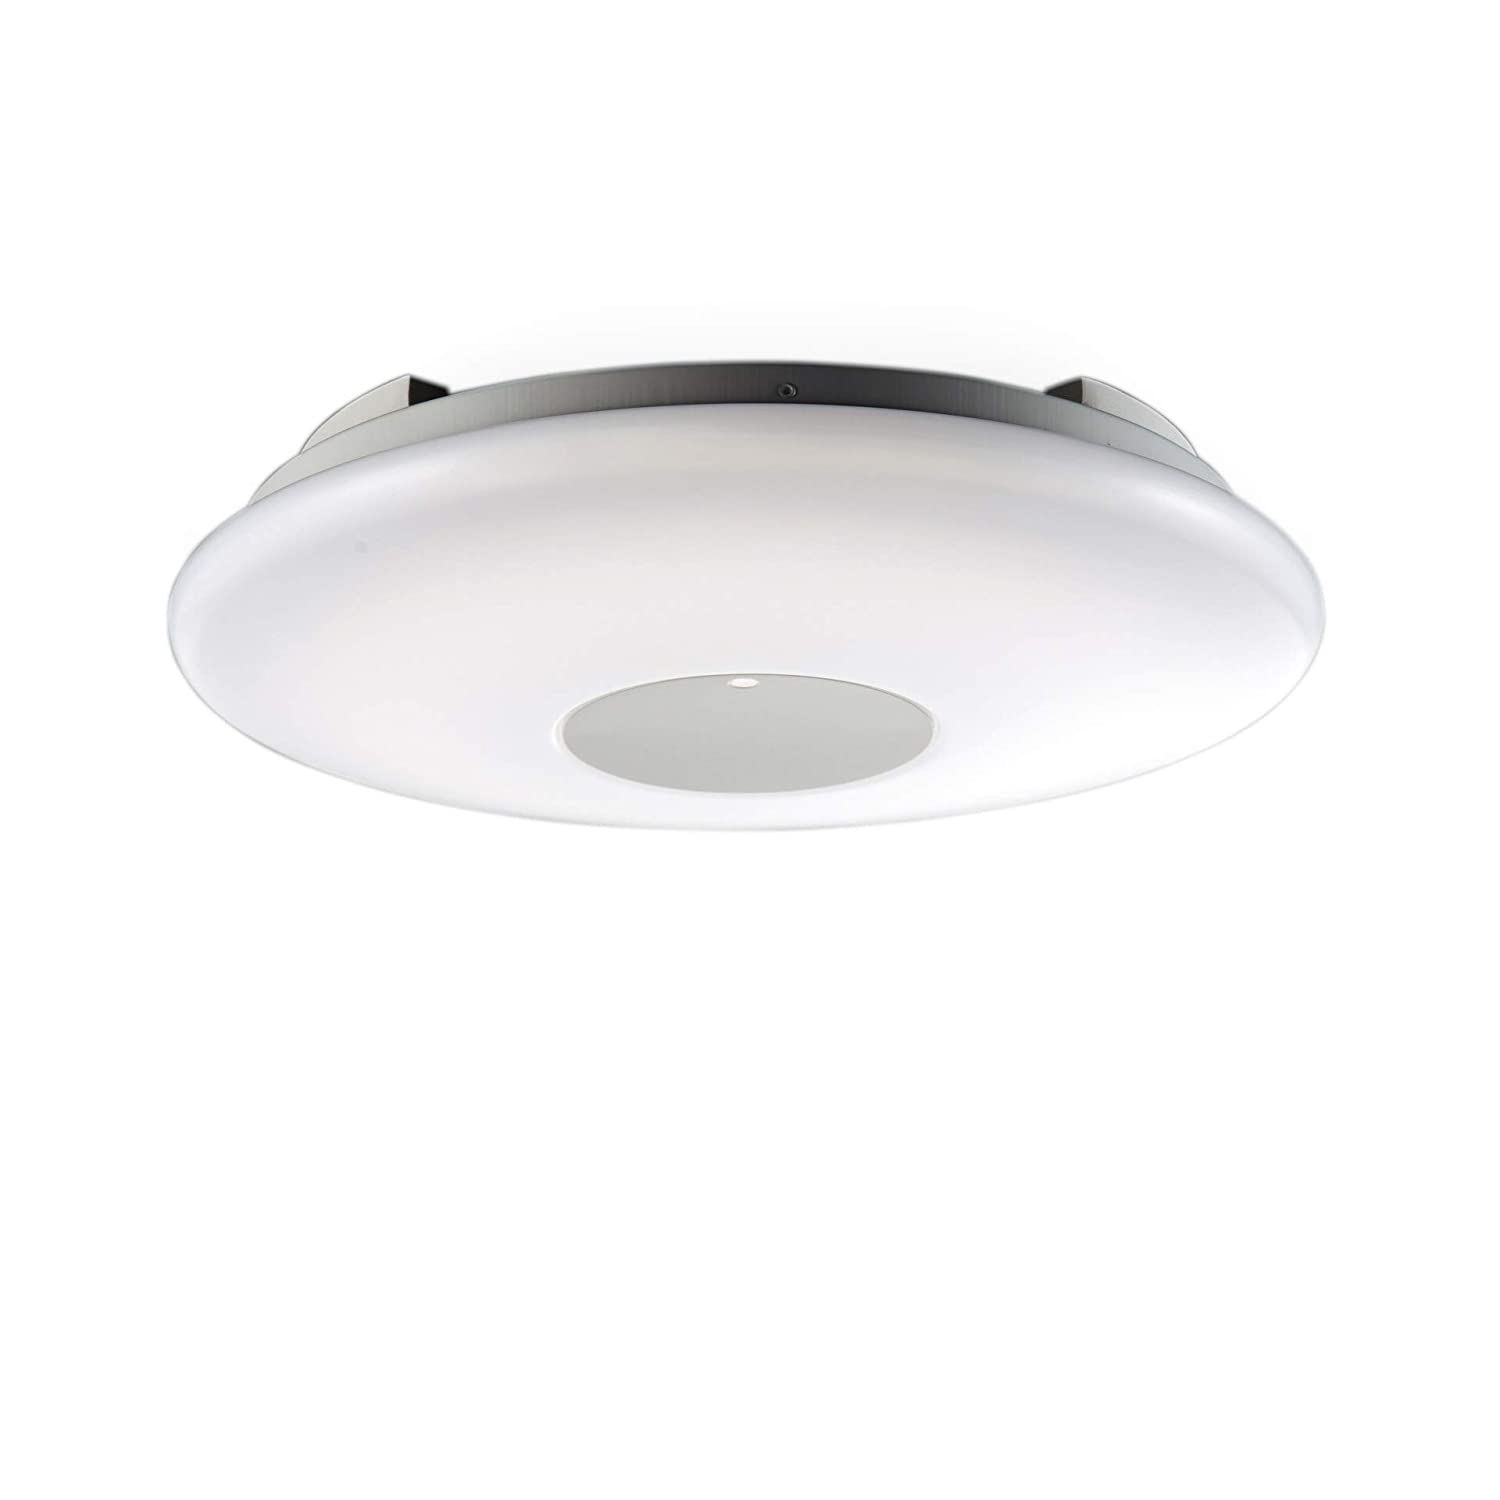 Round led ceiling light flush mount light kitchen light fitting fitting for living room 22w i 3 000 6 000 kelvin remote control dimmable